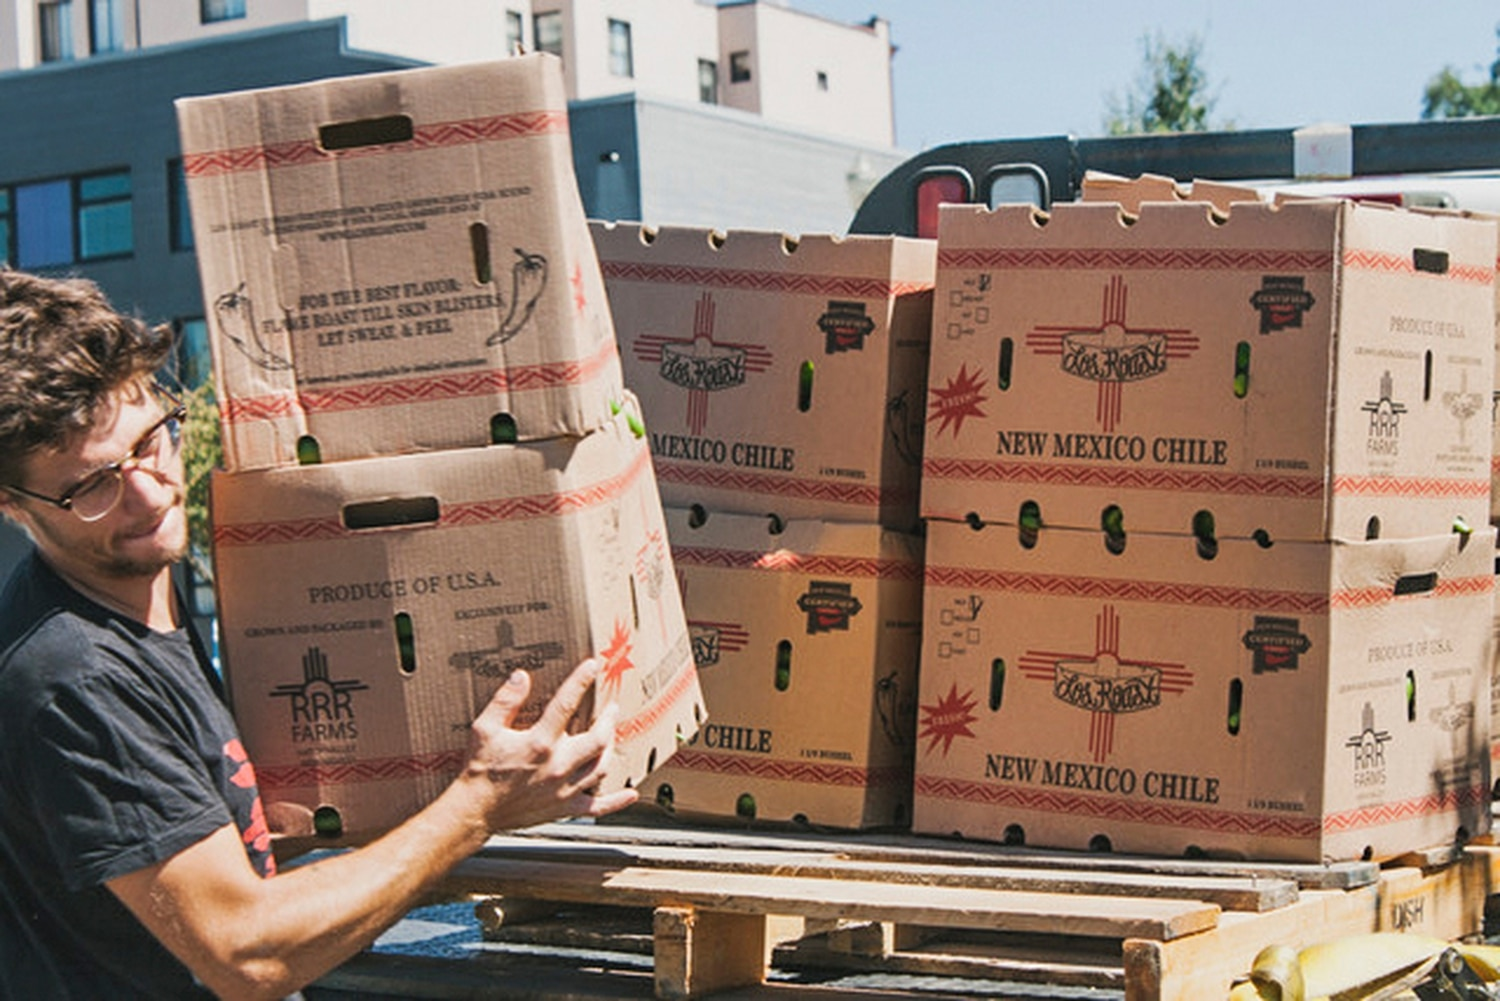 Marshall Berg carries 25-pound boxes of fresh New Mexican green chile